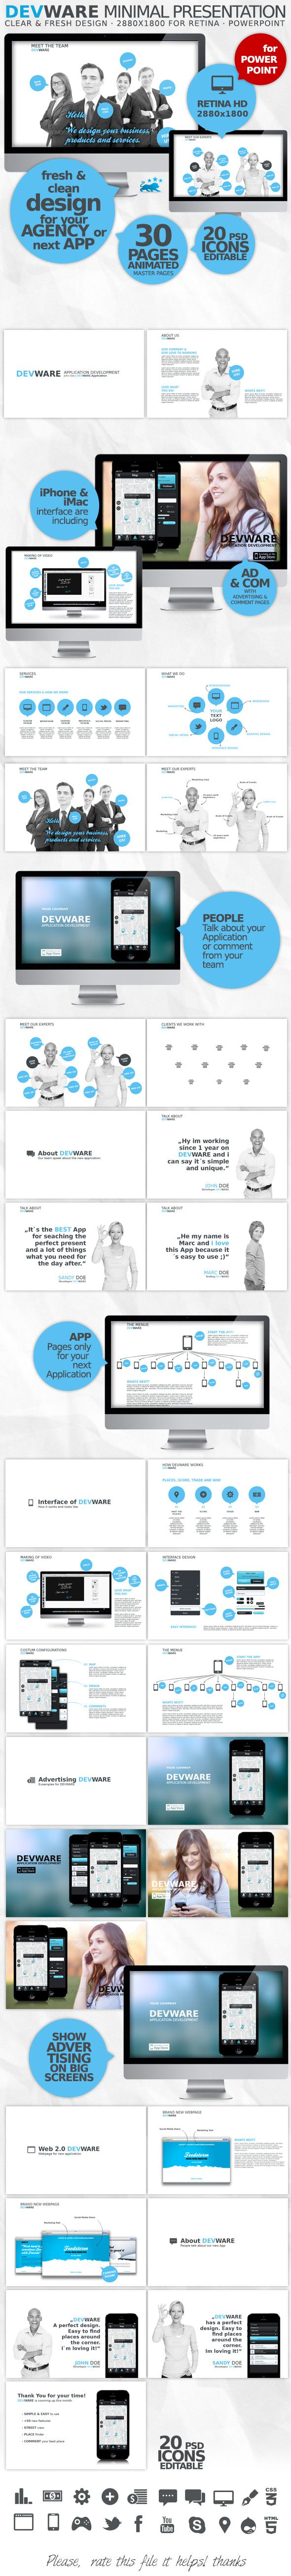 DEVWARE | 30 Pages | PowerPoint Presentation #idea #wdwl #personal • Click here to download ! http://graphicriver.net/item/devware-30-pages-powerpoint-presentation/4458248?s_rank=39&ref=pxcr